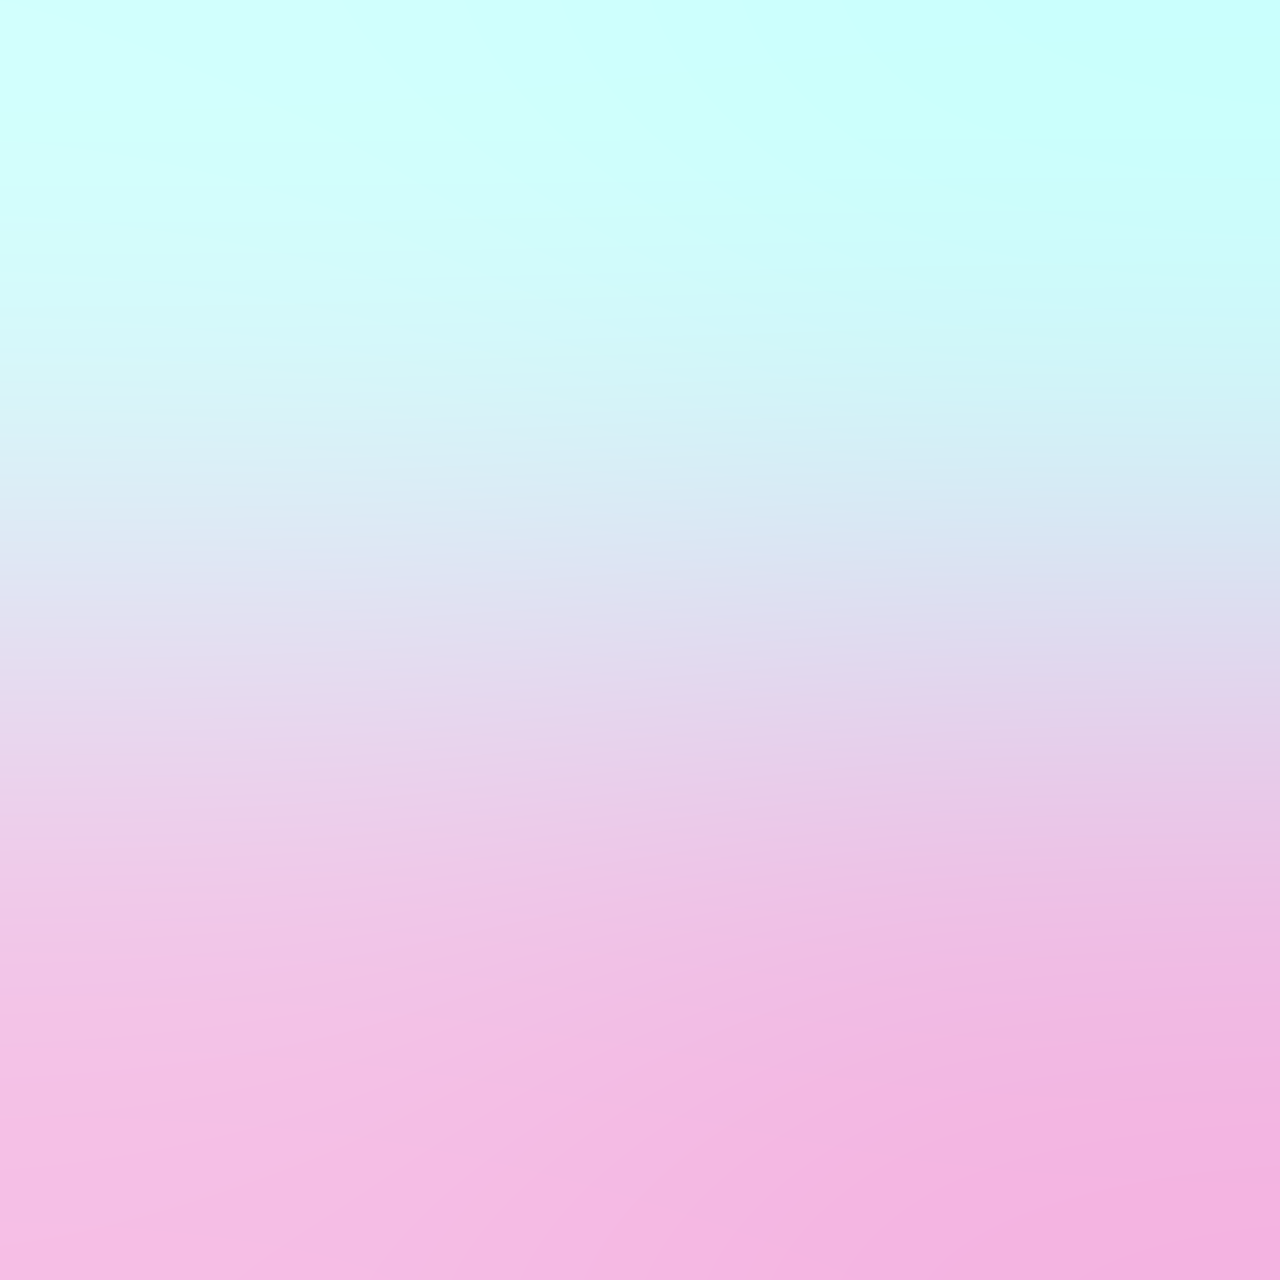 Pink And Blue PNG - 171087